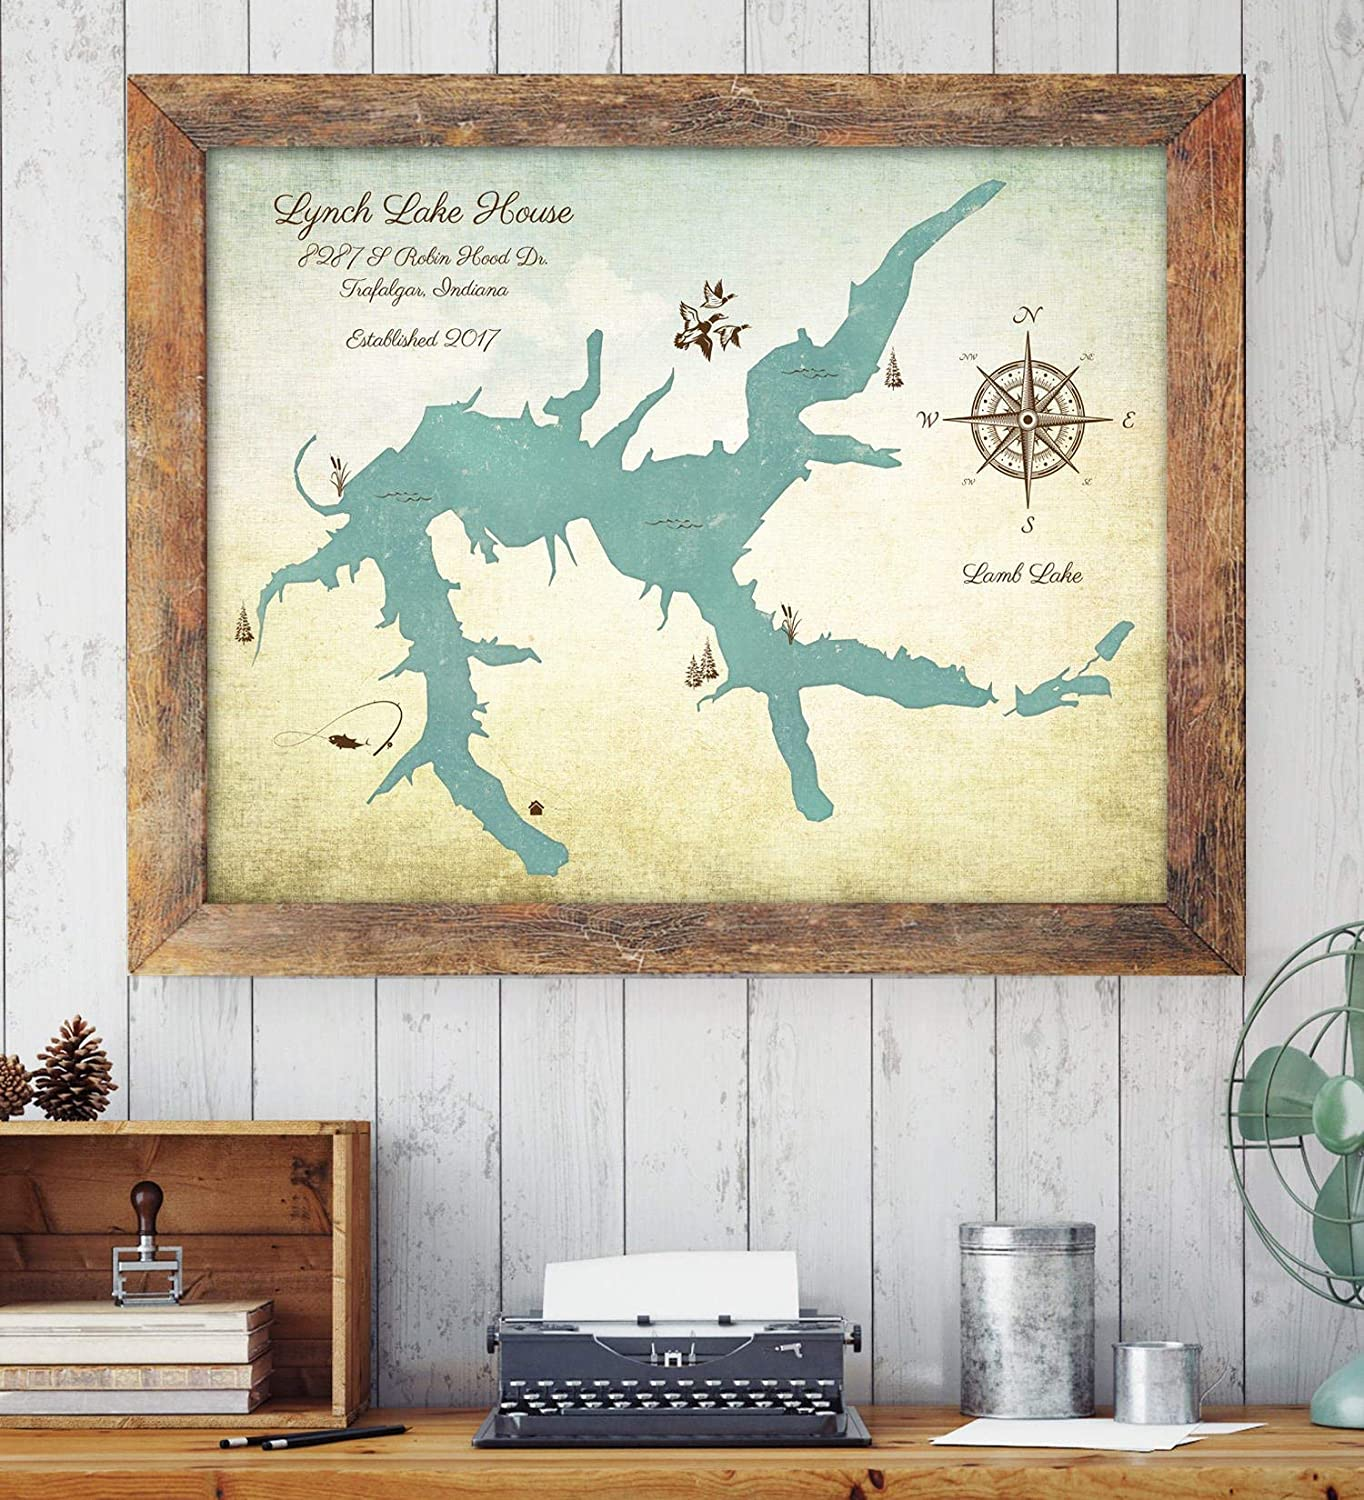 Amazon.com: Lake House Decor, Lake House Sign, Custom Lake Map, Lake Decor,  Custom Lake Map, Family Cabin Art, Rustic Home Decor, Family Lake House: ...